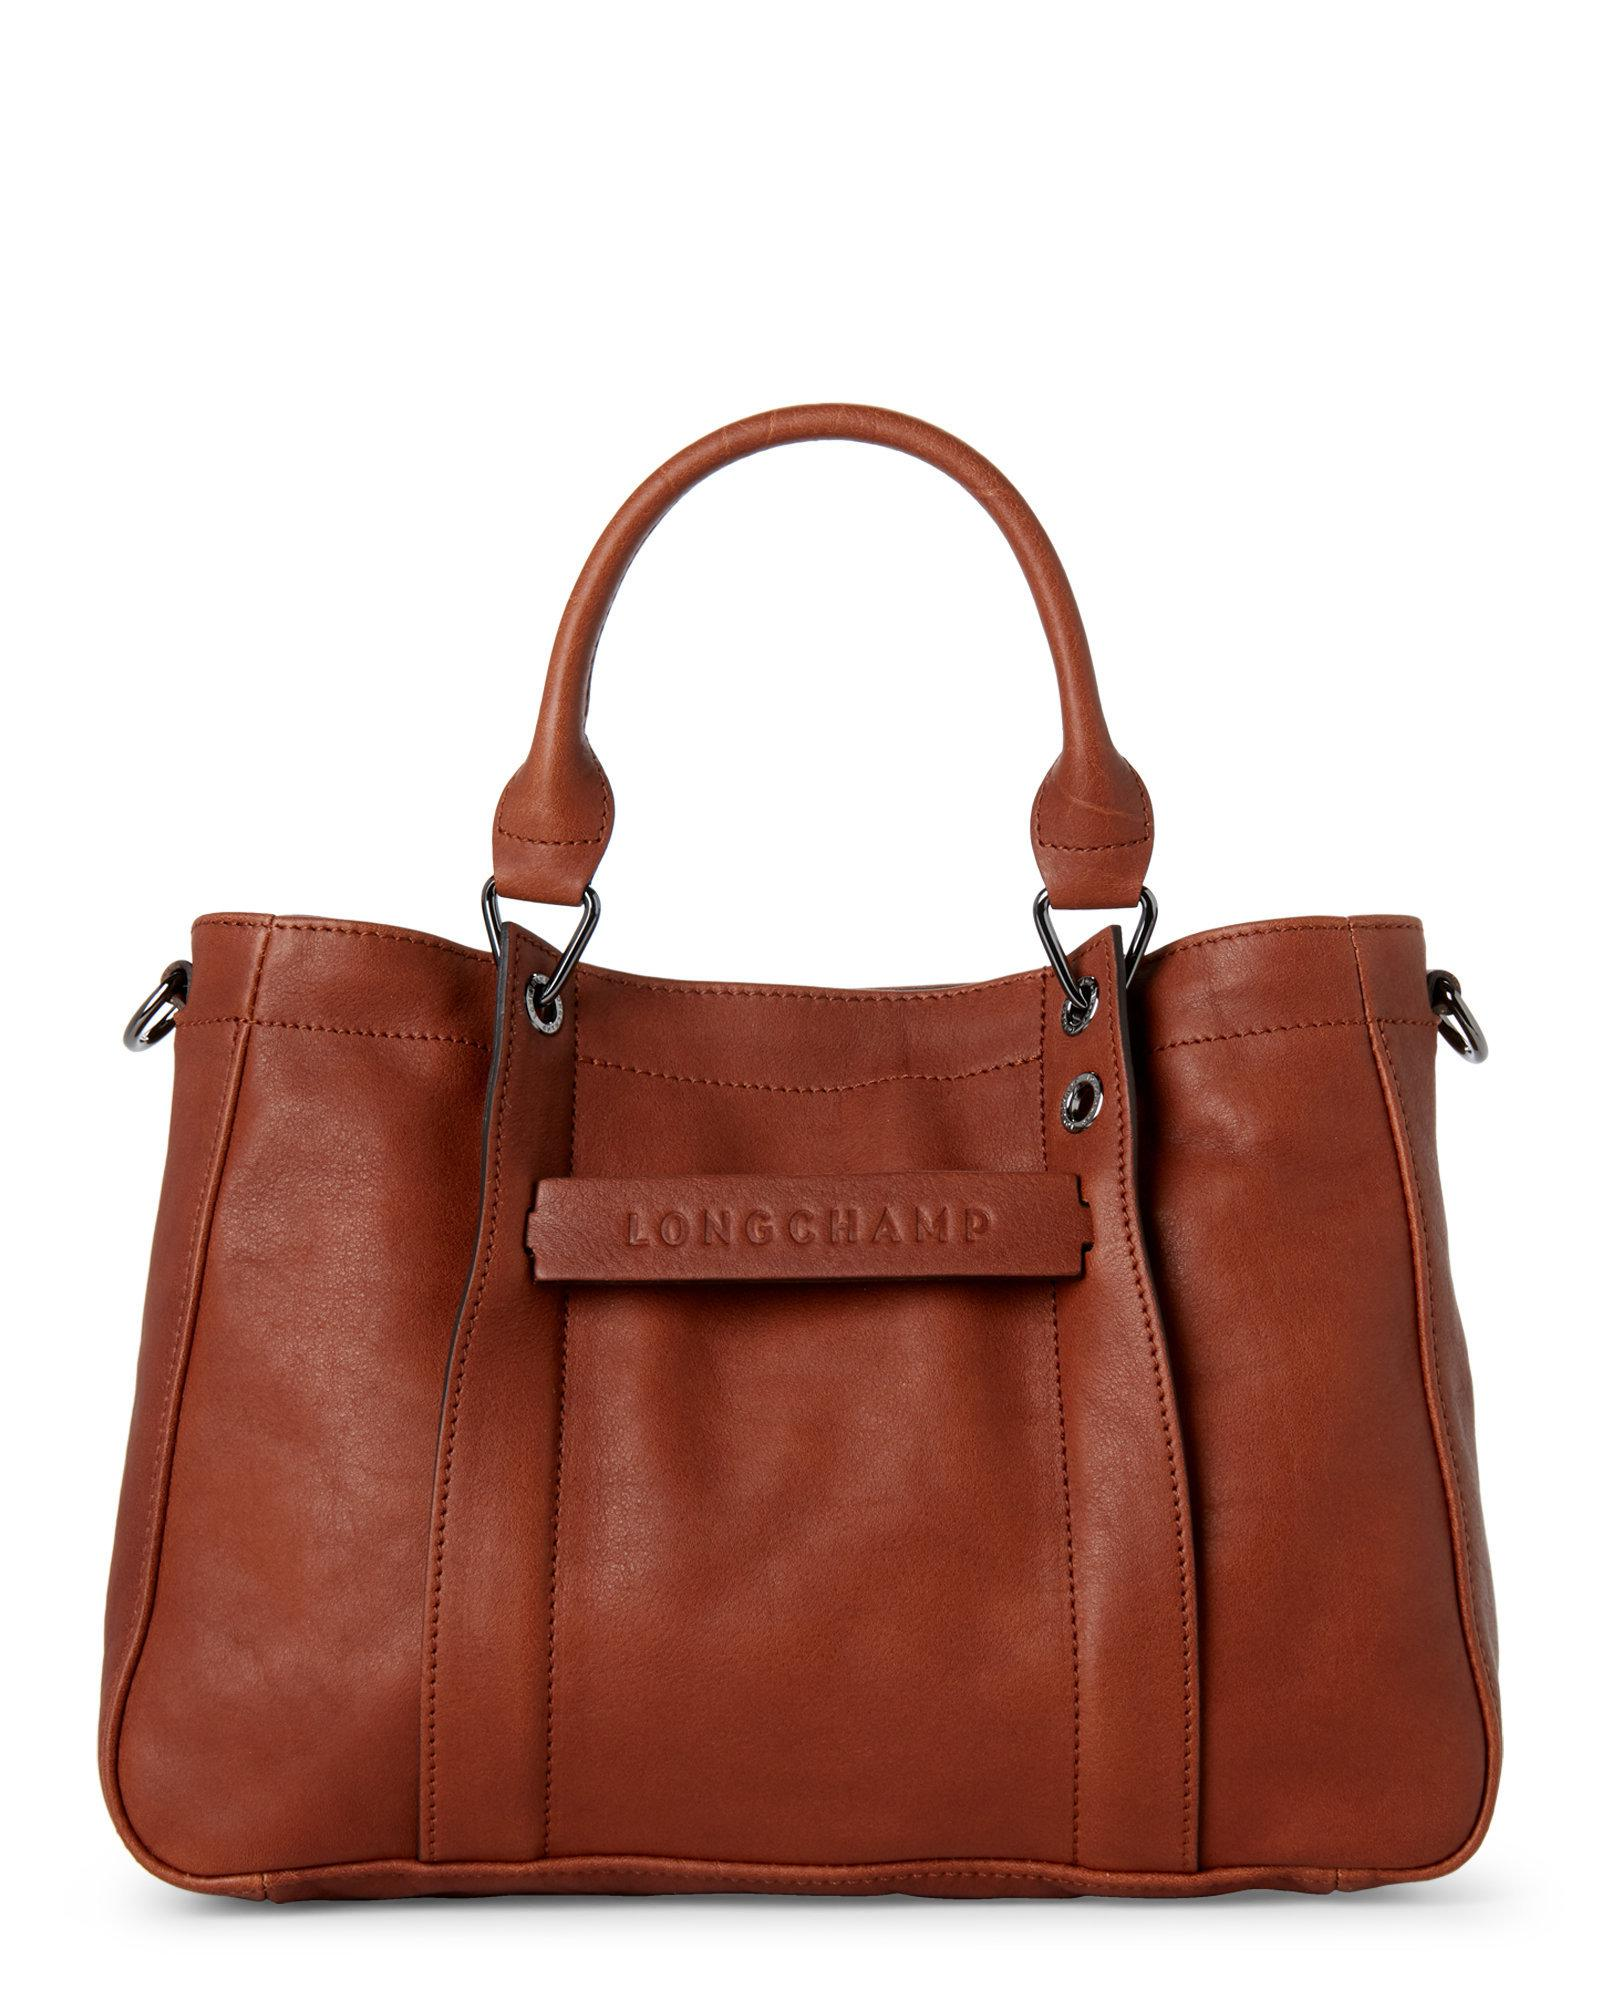 Lyst - Longchamp 3d Small Leather Tote in Brown 2ce9bf5af39c8